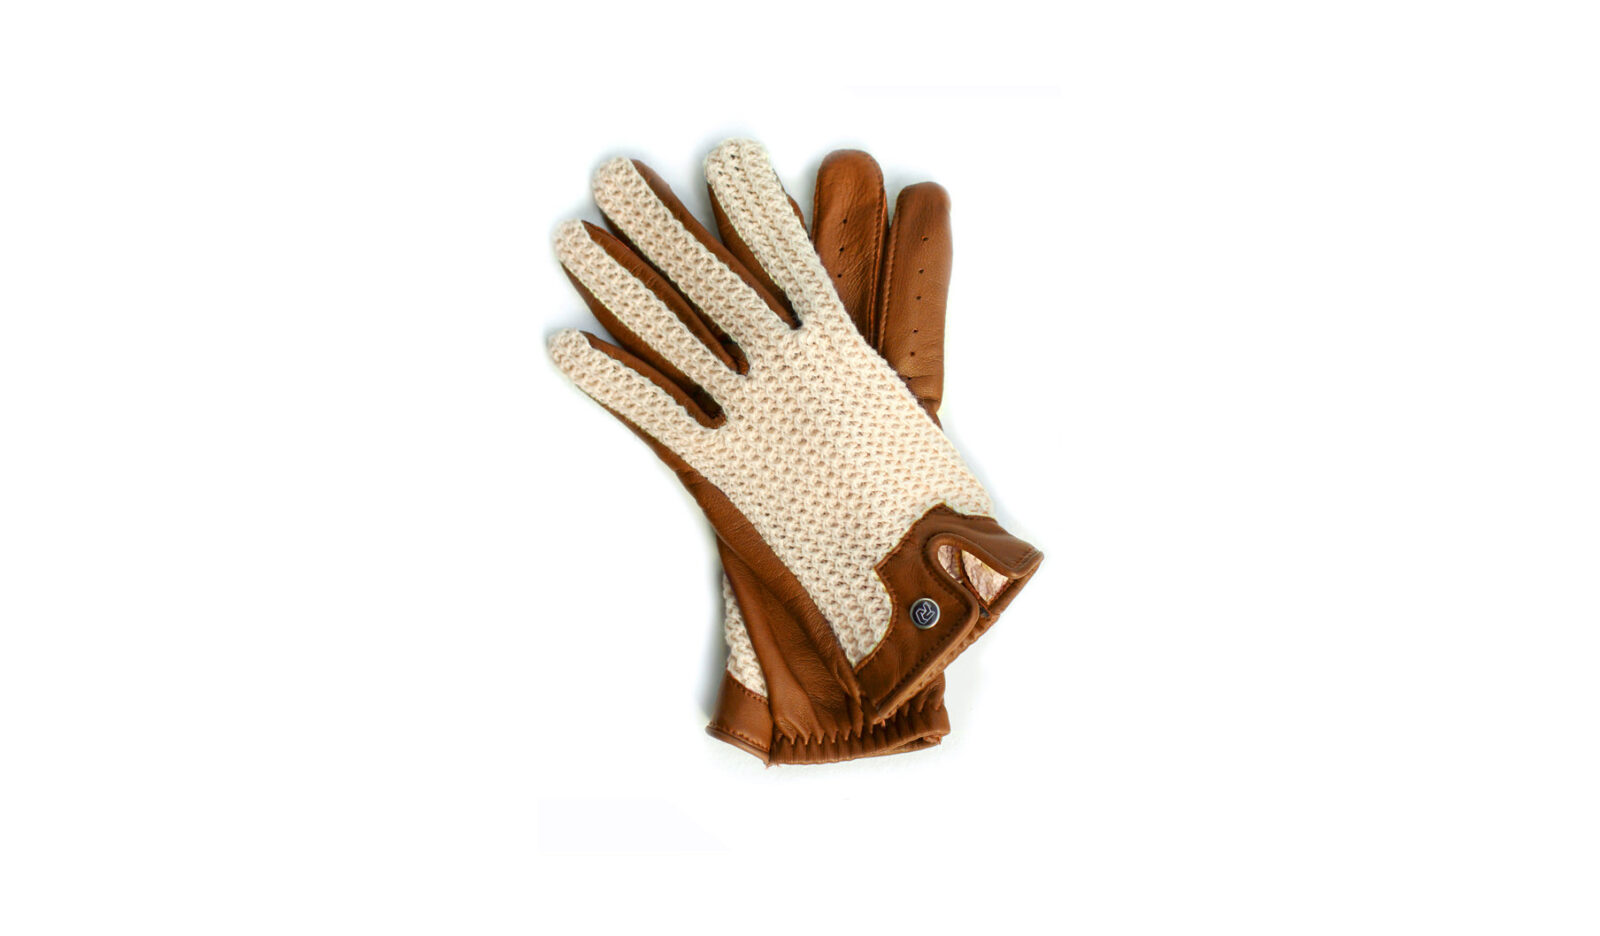 Autodromo Stringback Driving Gloves 1600x936 - Autodromo Stringback Driving Gloves